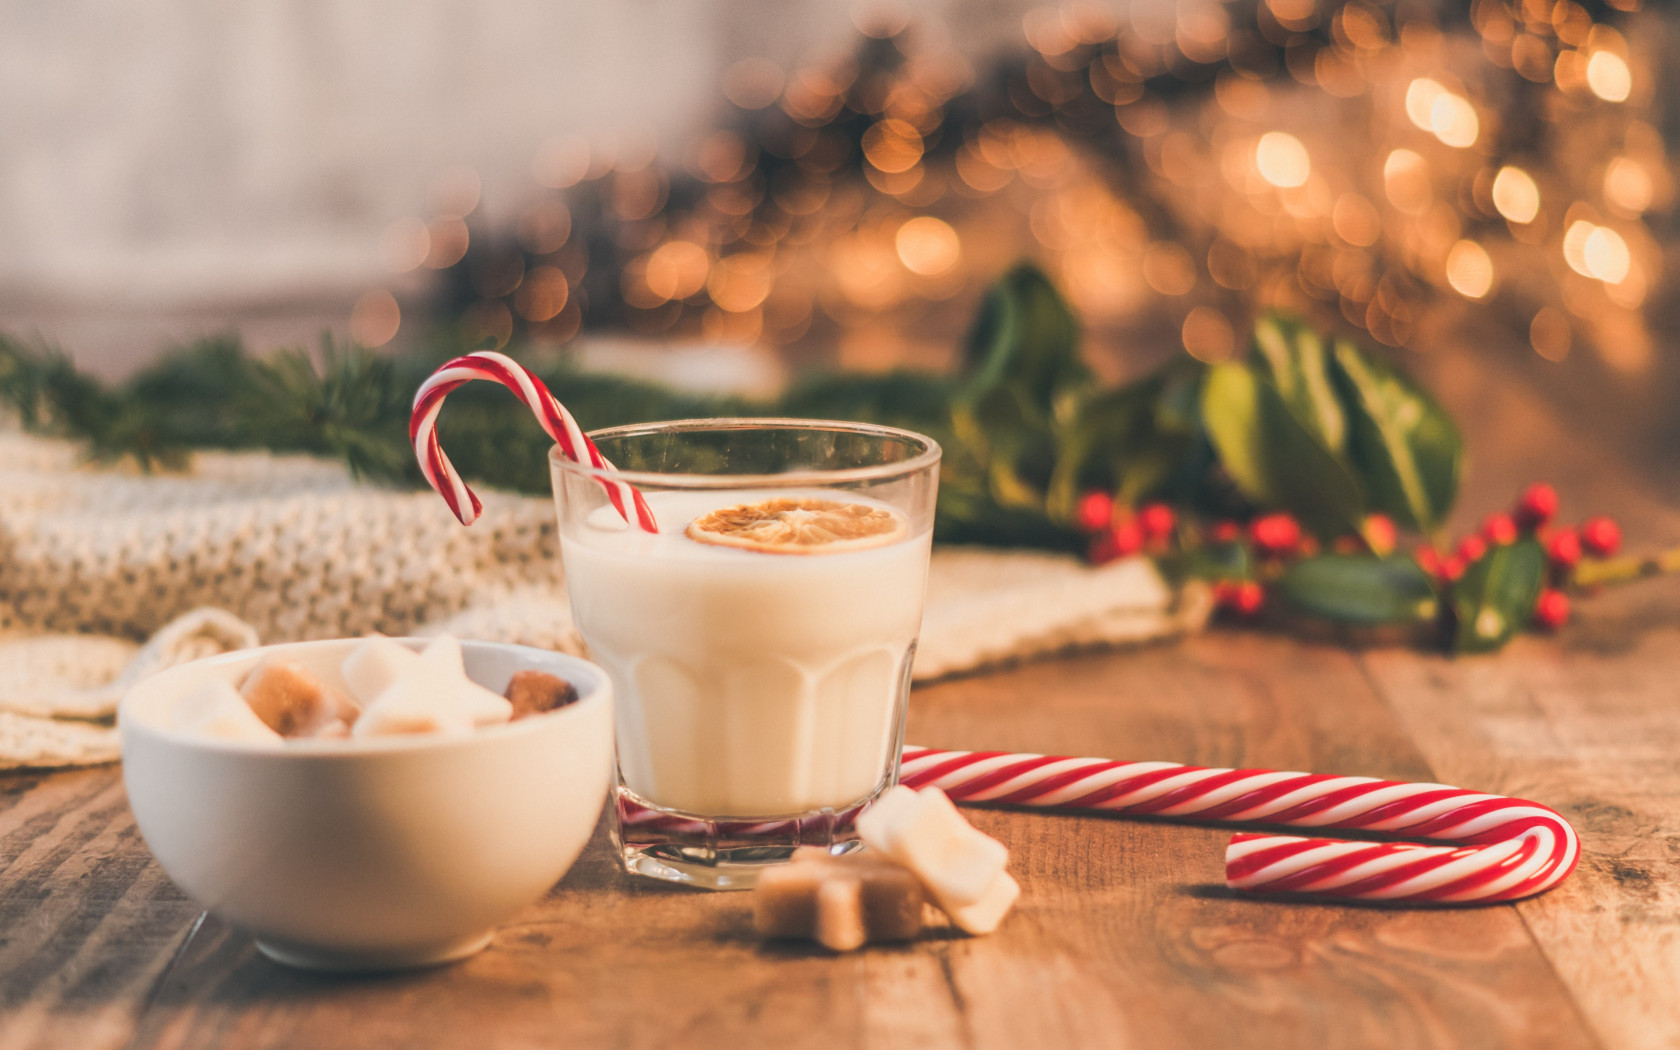 Seasonal Christmas sweets and cup of milk wallpaper 1680x1050